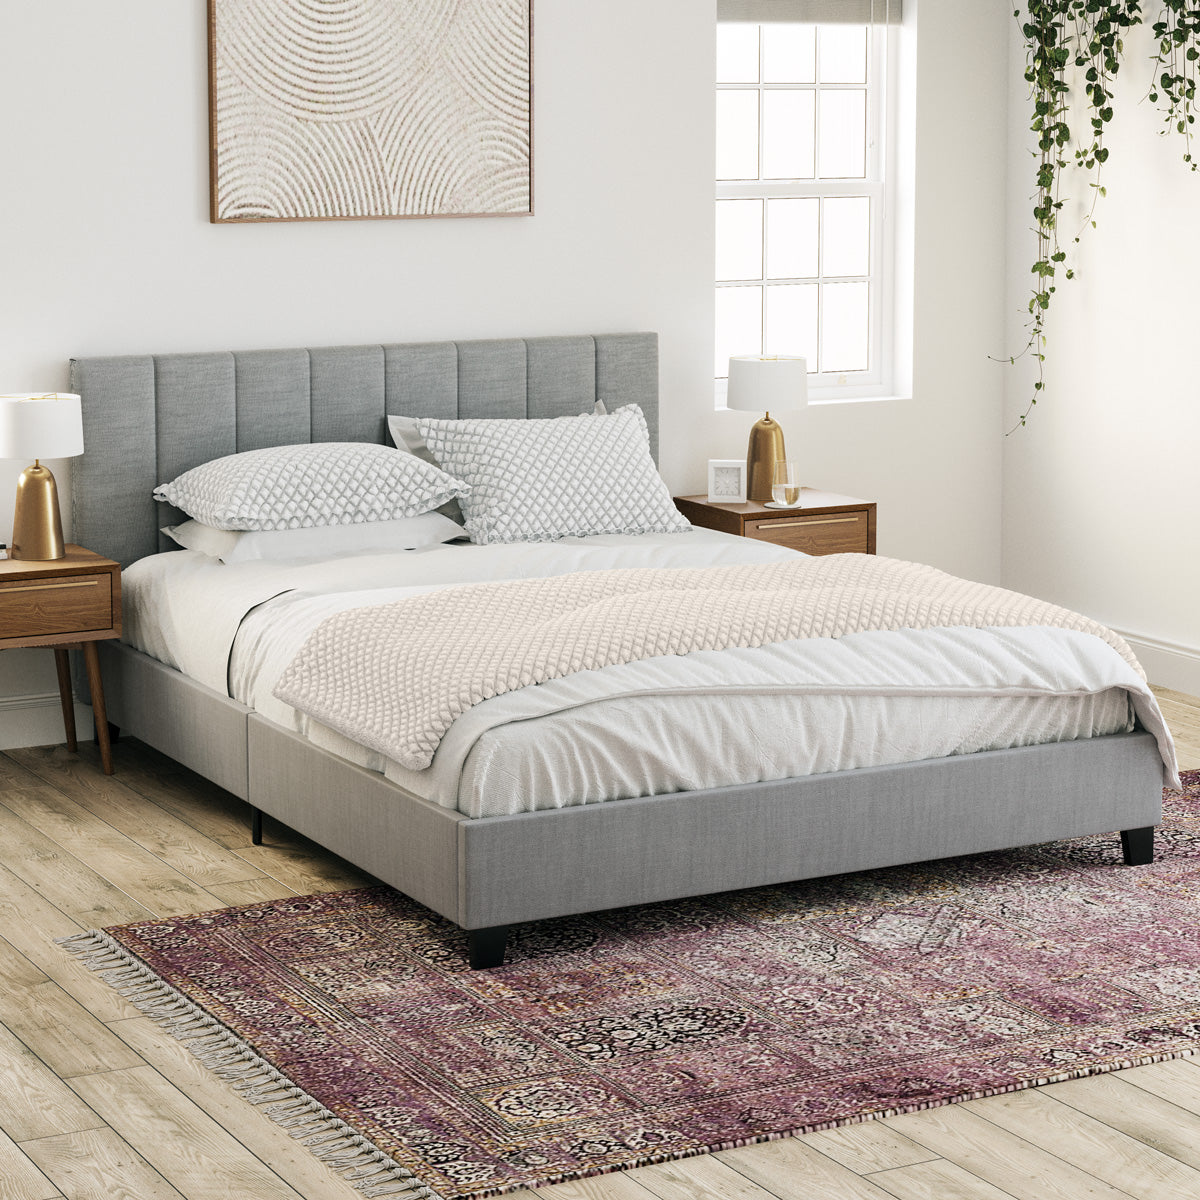 Ormond Fabric Bed Frame (Grey)